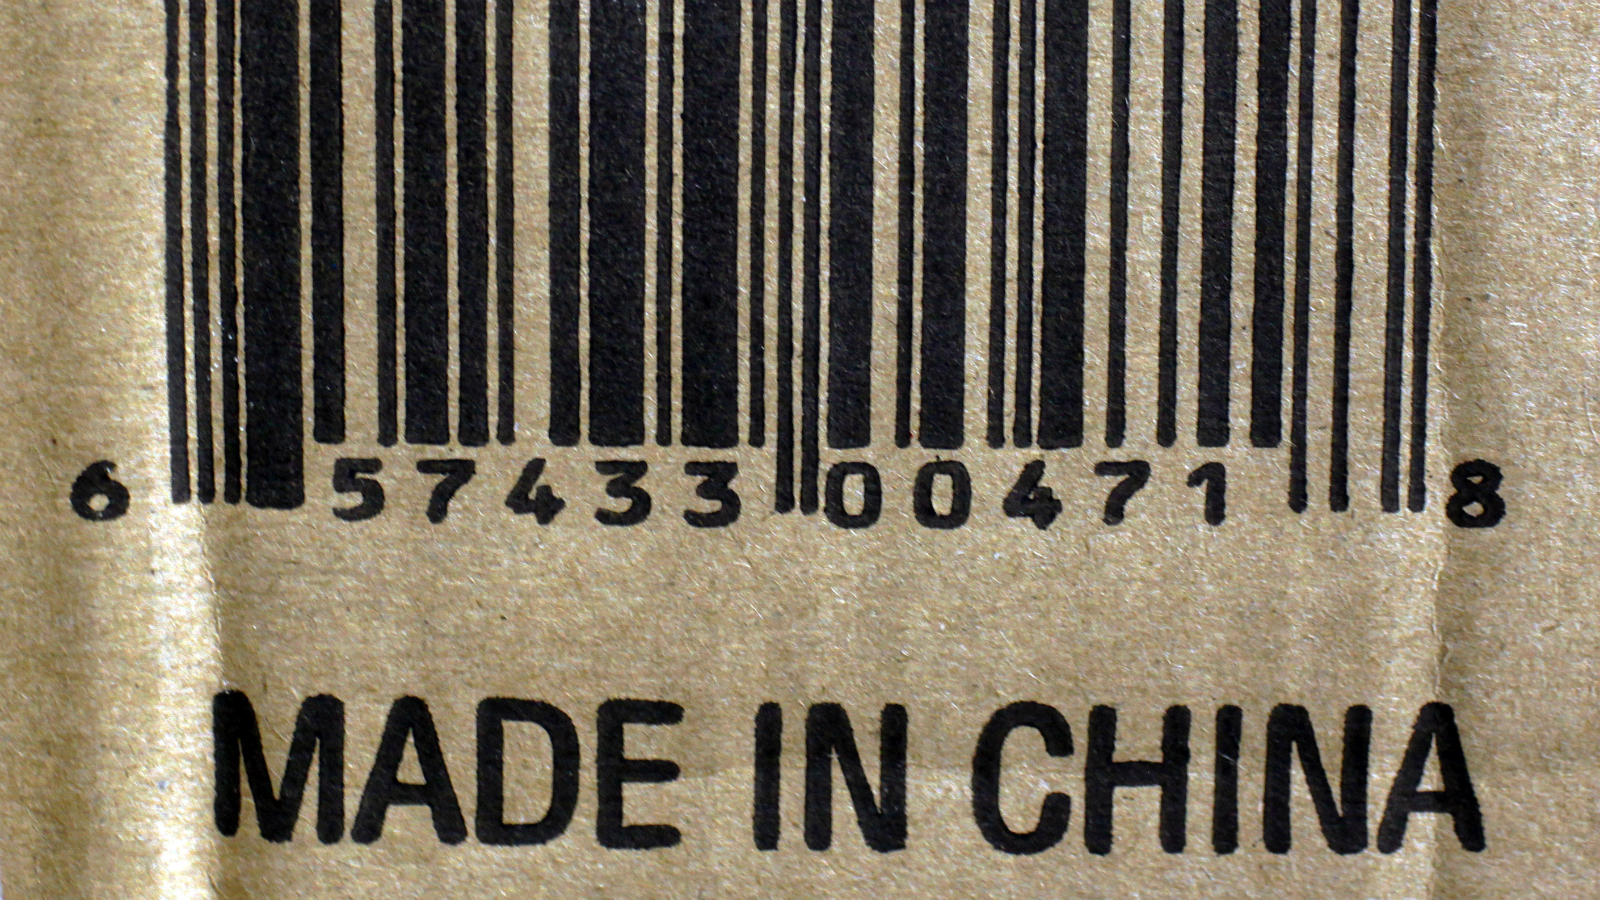 """The box for a wine refrigerator reads """"Made in China"""" at a Costco store in Everett, Massachusetts January 18, 2011. Beijing announced $600 million in deals with U.S. companies on Monday while senior U.S. senators pressed for Congress to get tough with China over """"manipulating"""" its currency, underlining tensions over trade issues on the eve of Chinese President Hu Jintao's arrival."""